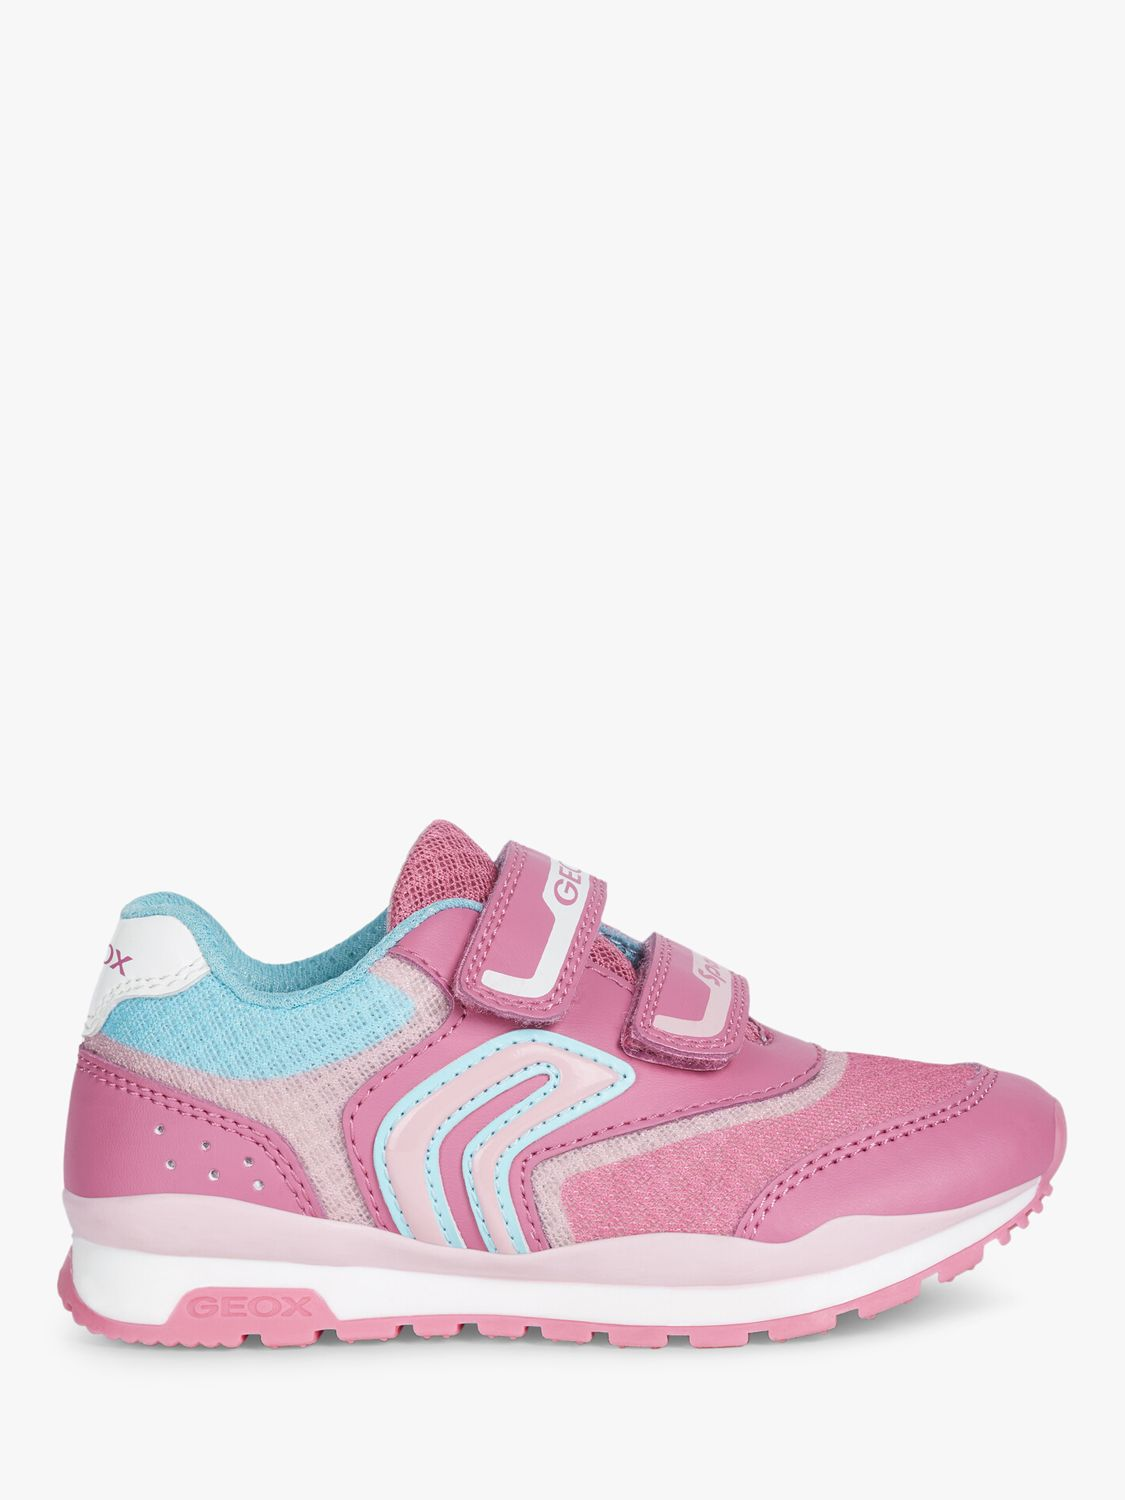 Geox Geox Children's Pavel Trainers, Fuschia/Pink